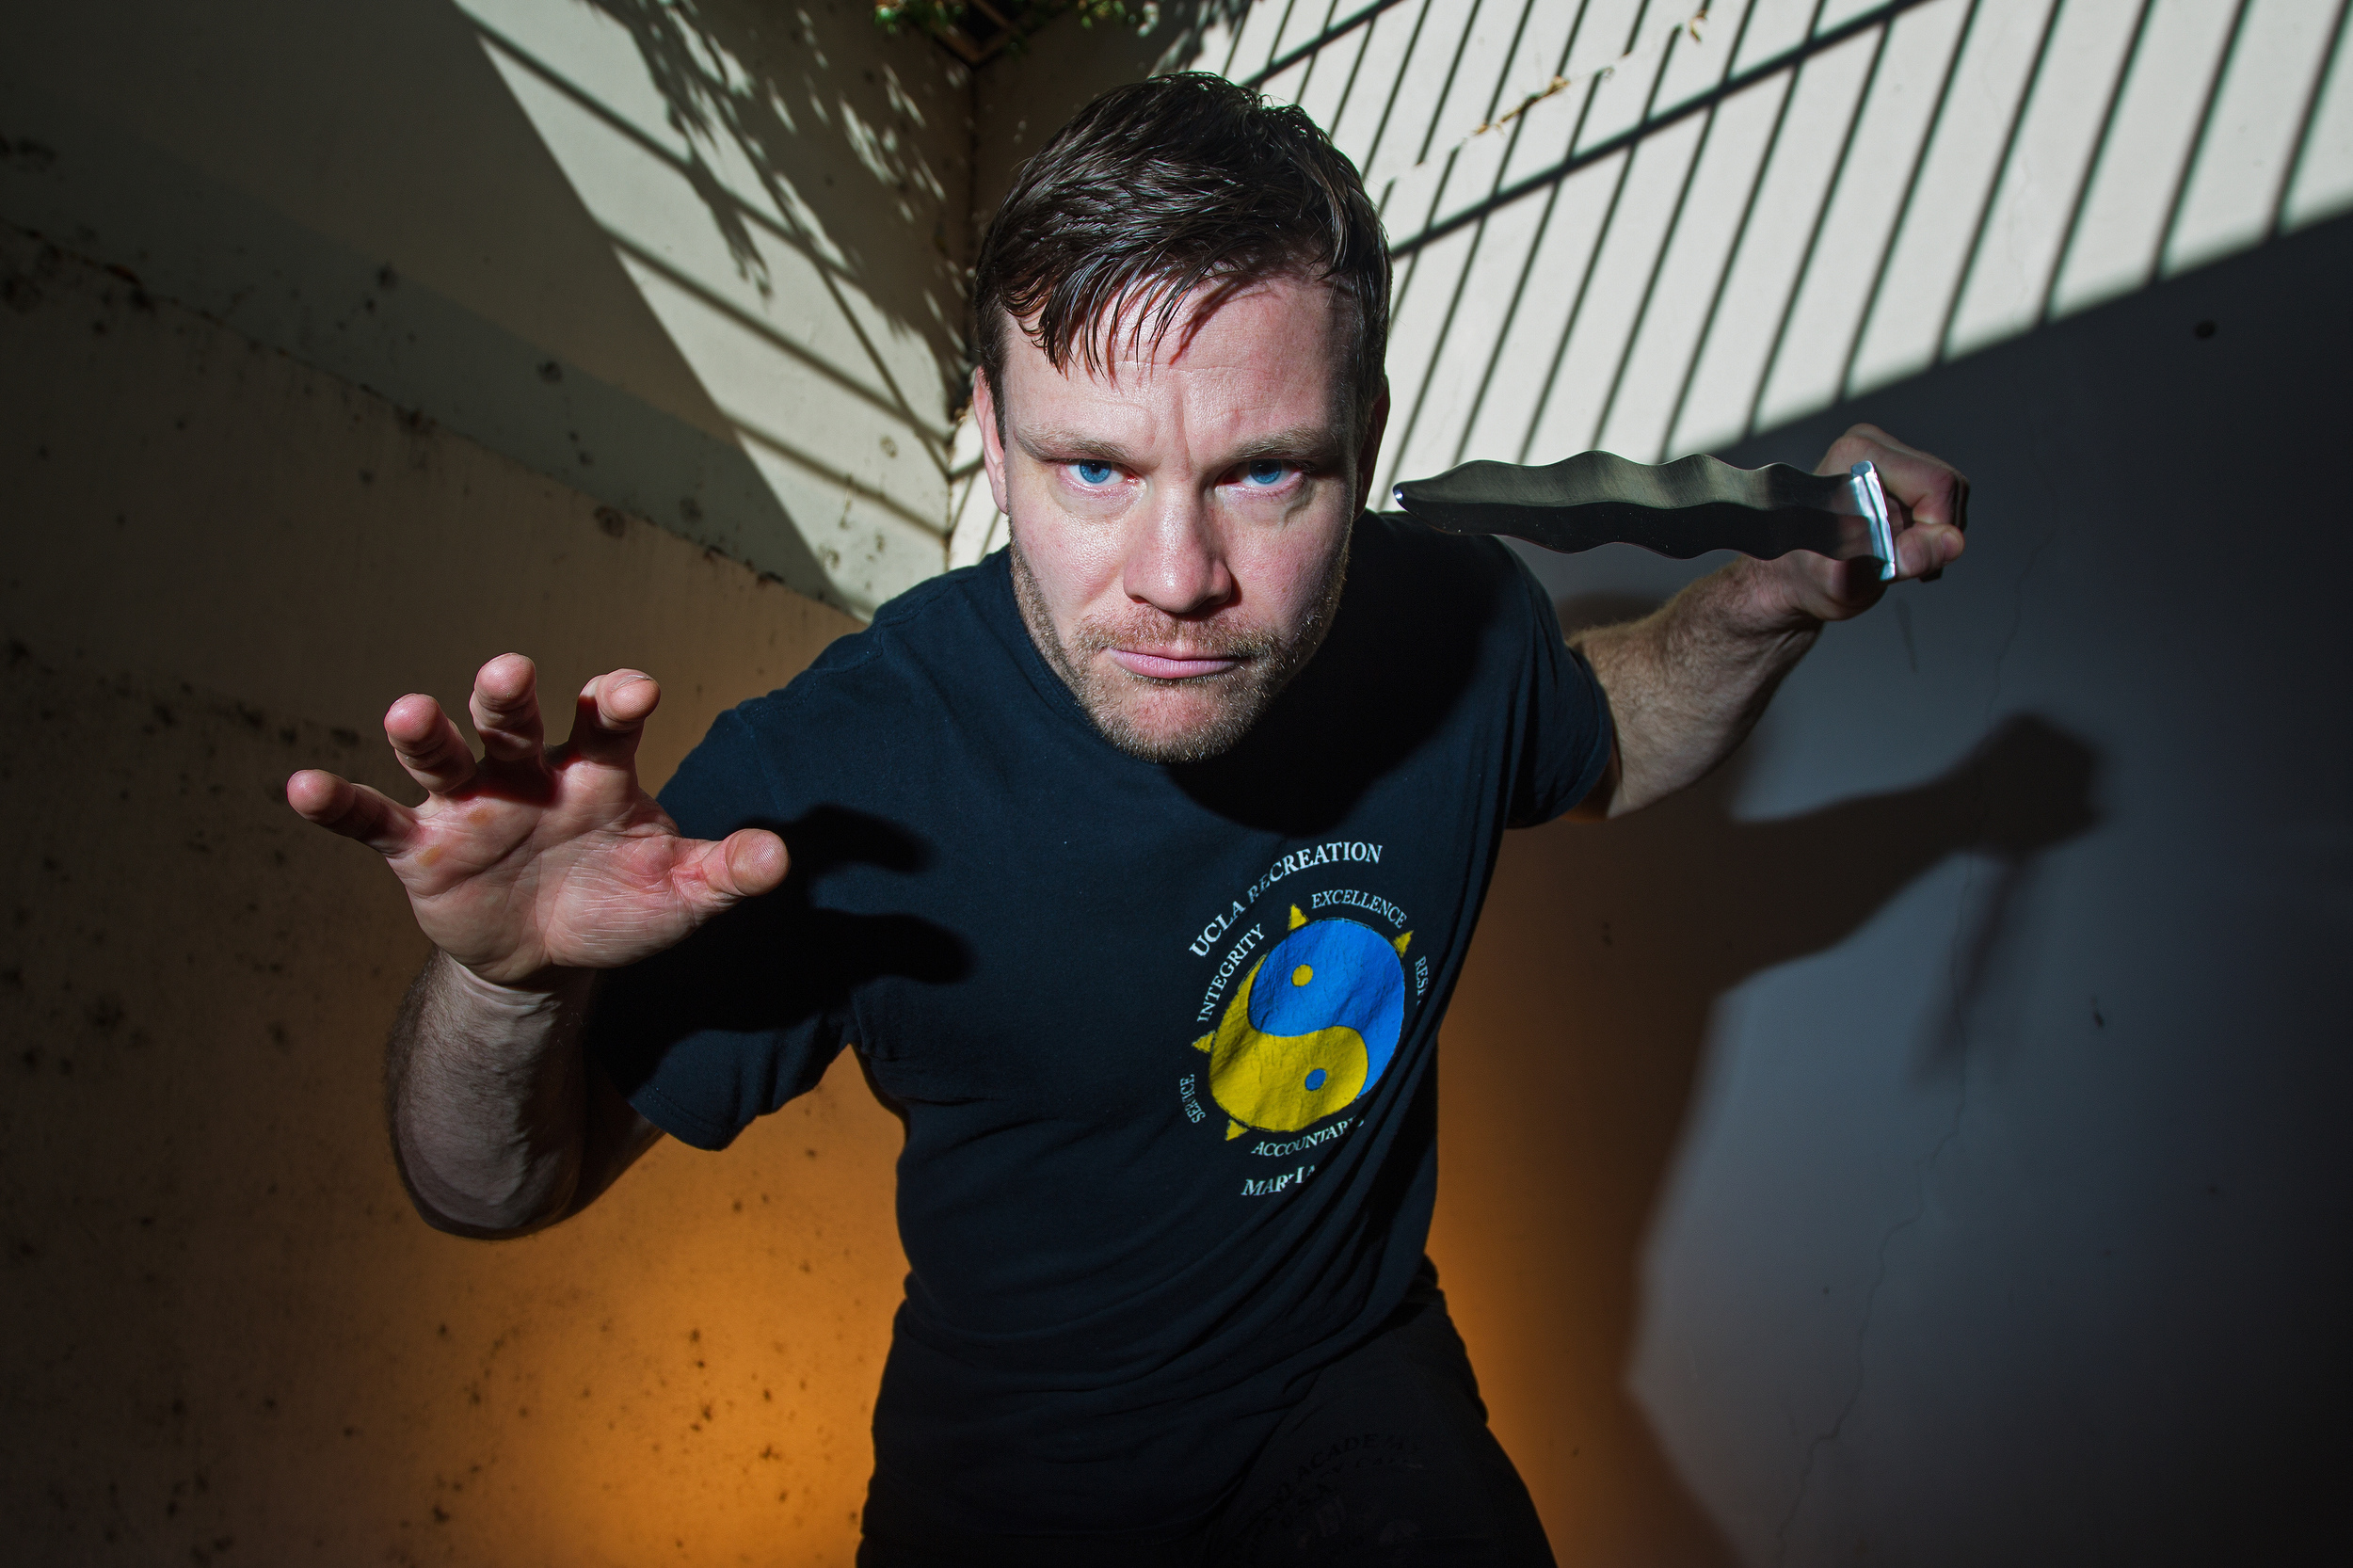 UCLA Recreation martial arts instructor Paul McCarthy poses for a portrait at the Crowne Plaza hotel in Costa Mesa, CA.